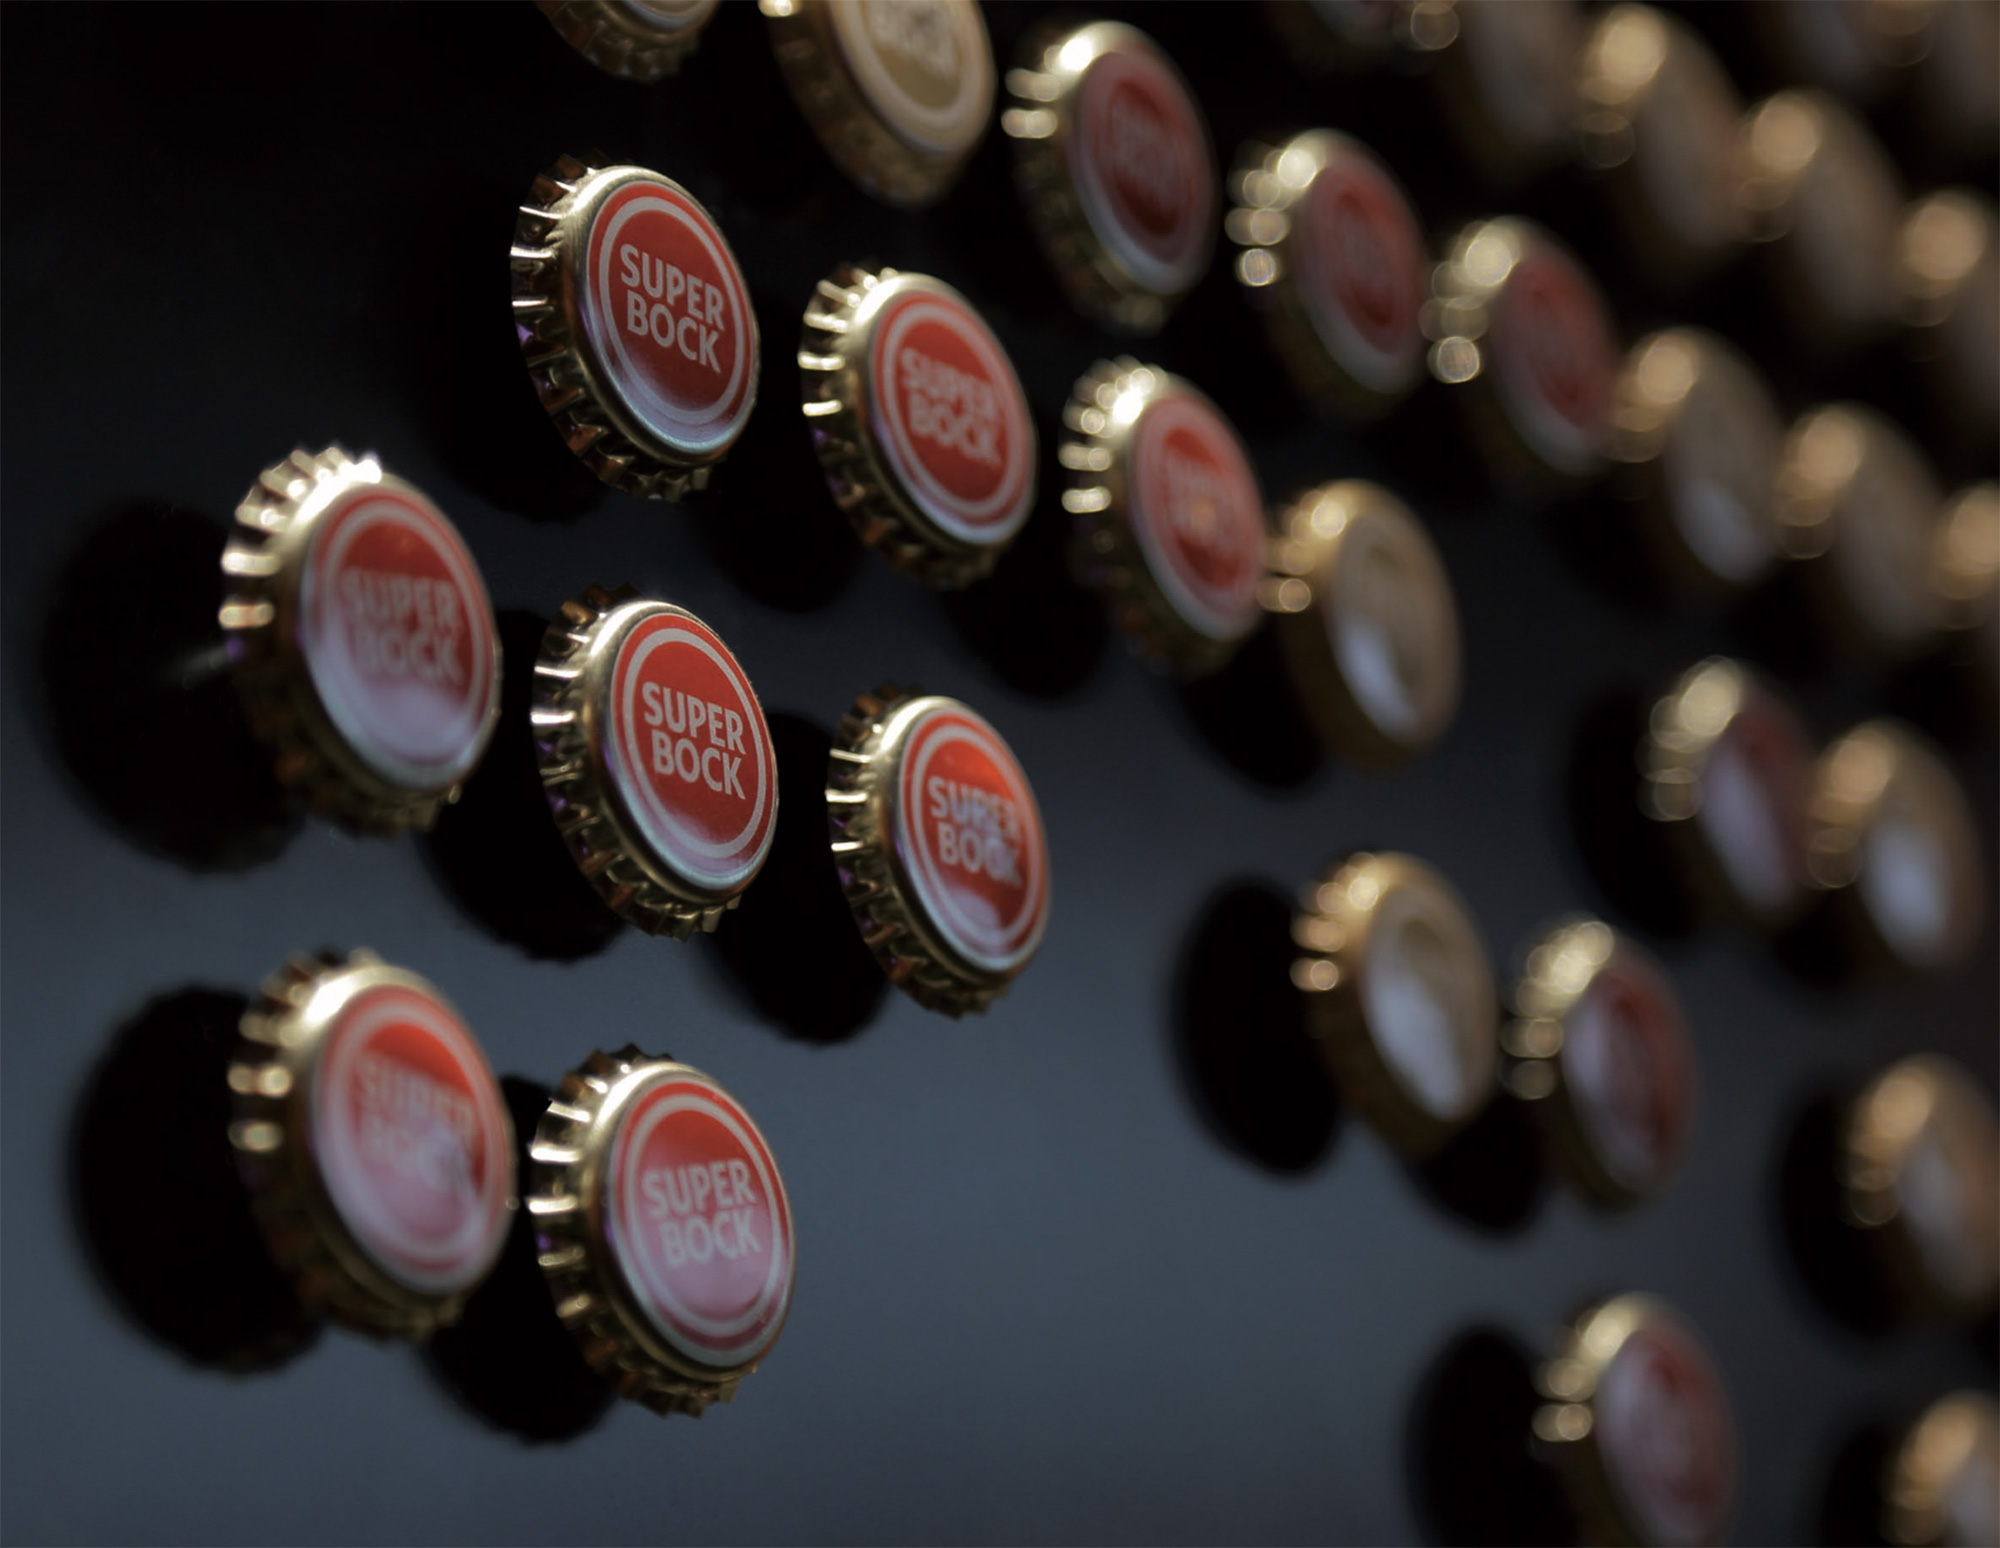 Muse Creative Awards | Super Bock House of Beer Interactive Brand Experience